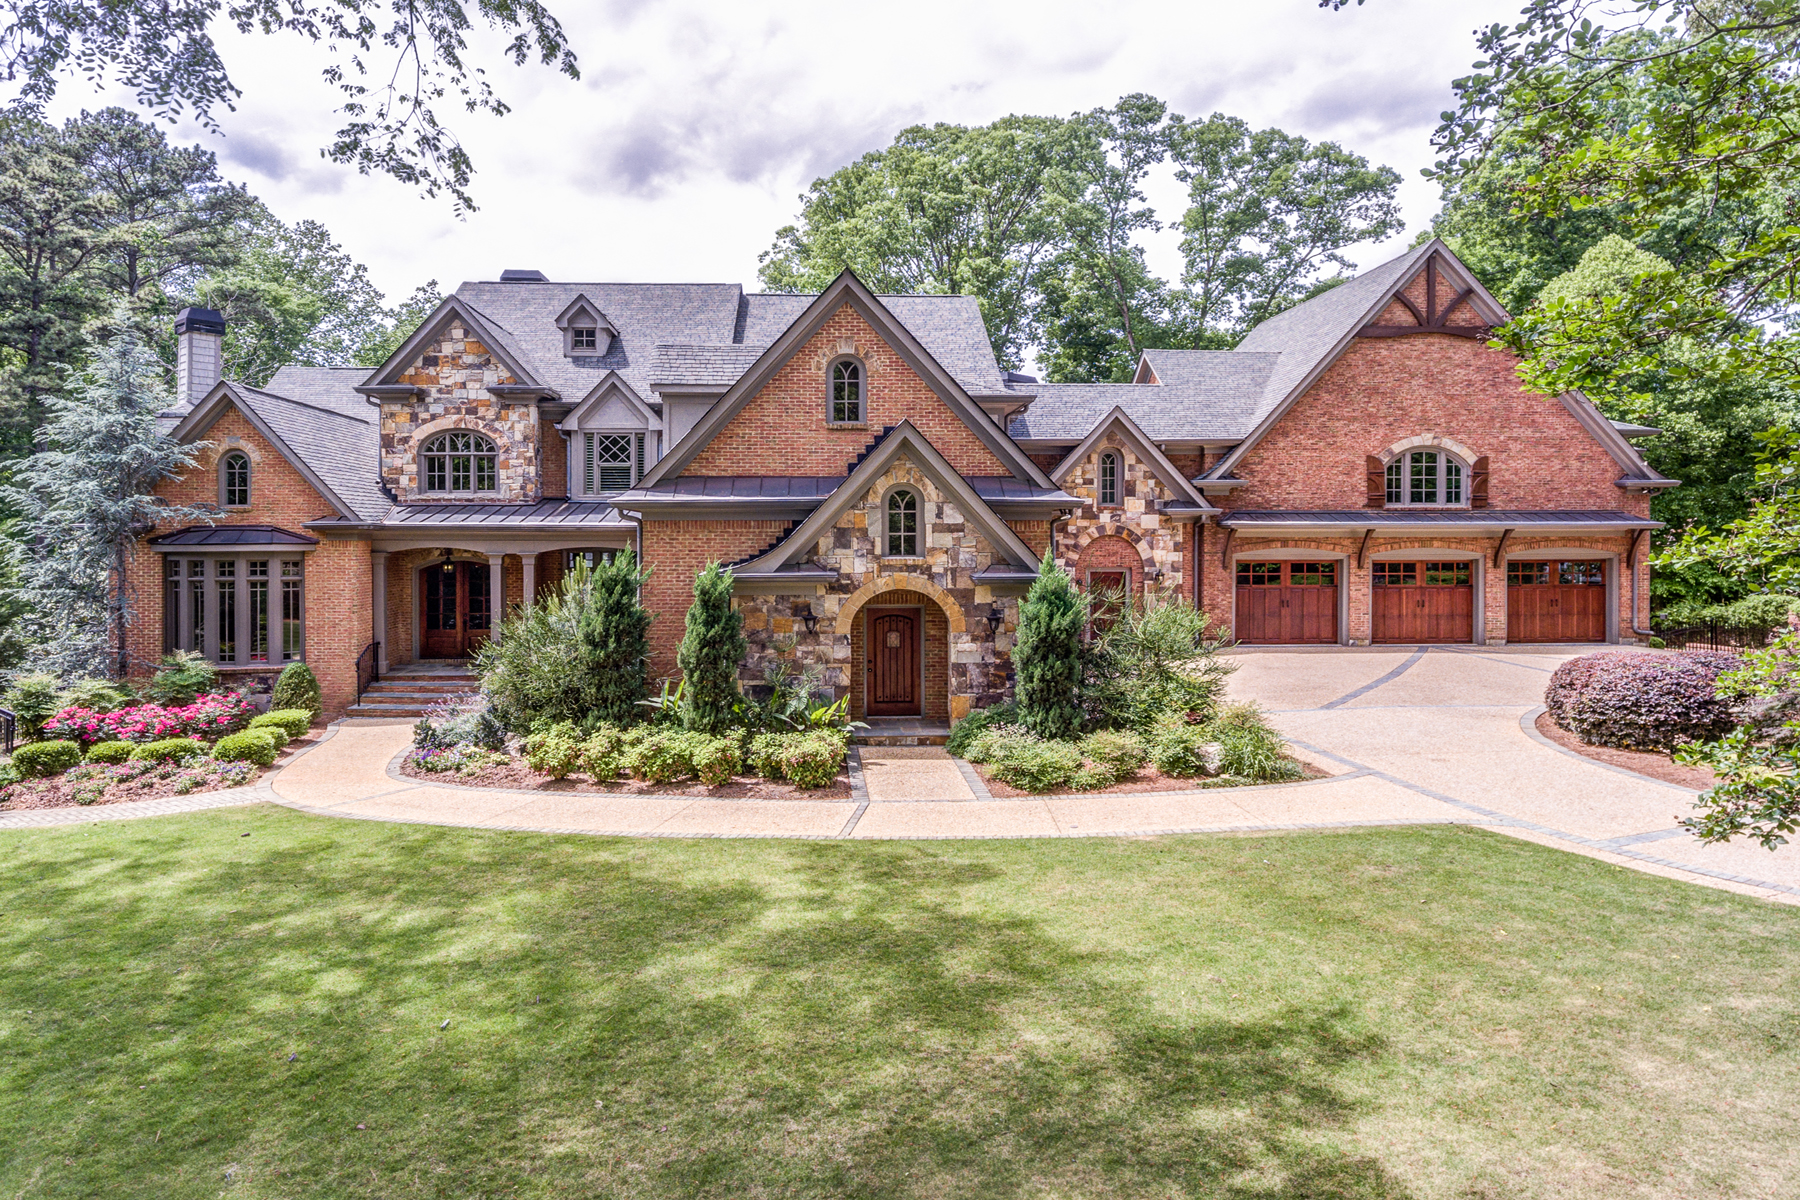 Single Family Home for Sale at Exclusive Buckhead Retreat 280 Old Ivy Road Atlanta, Georgia 30342 United States